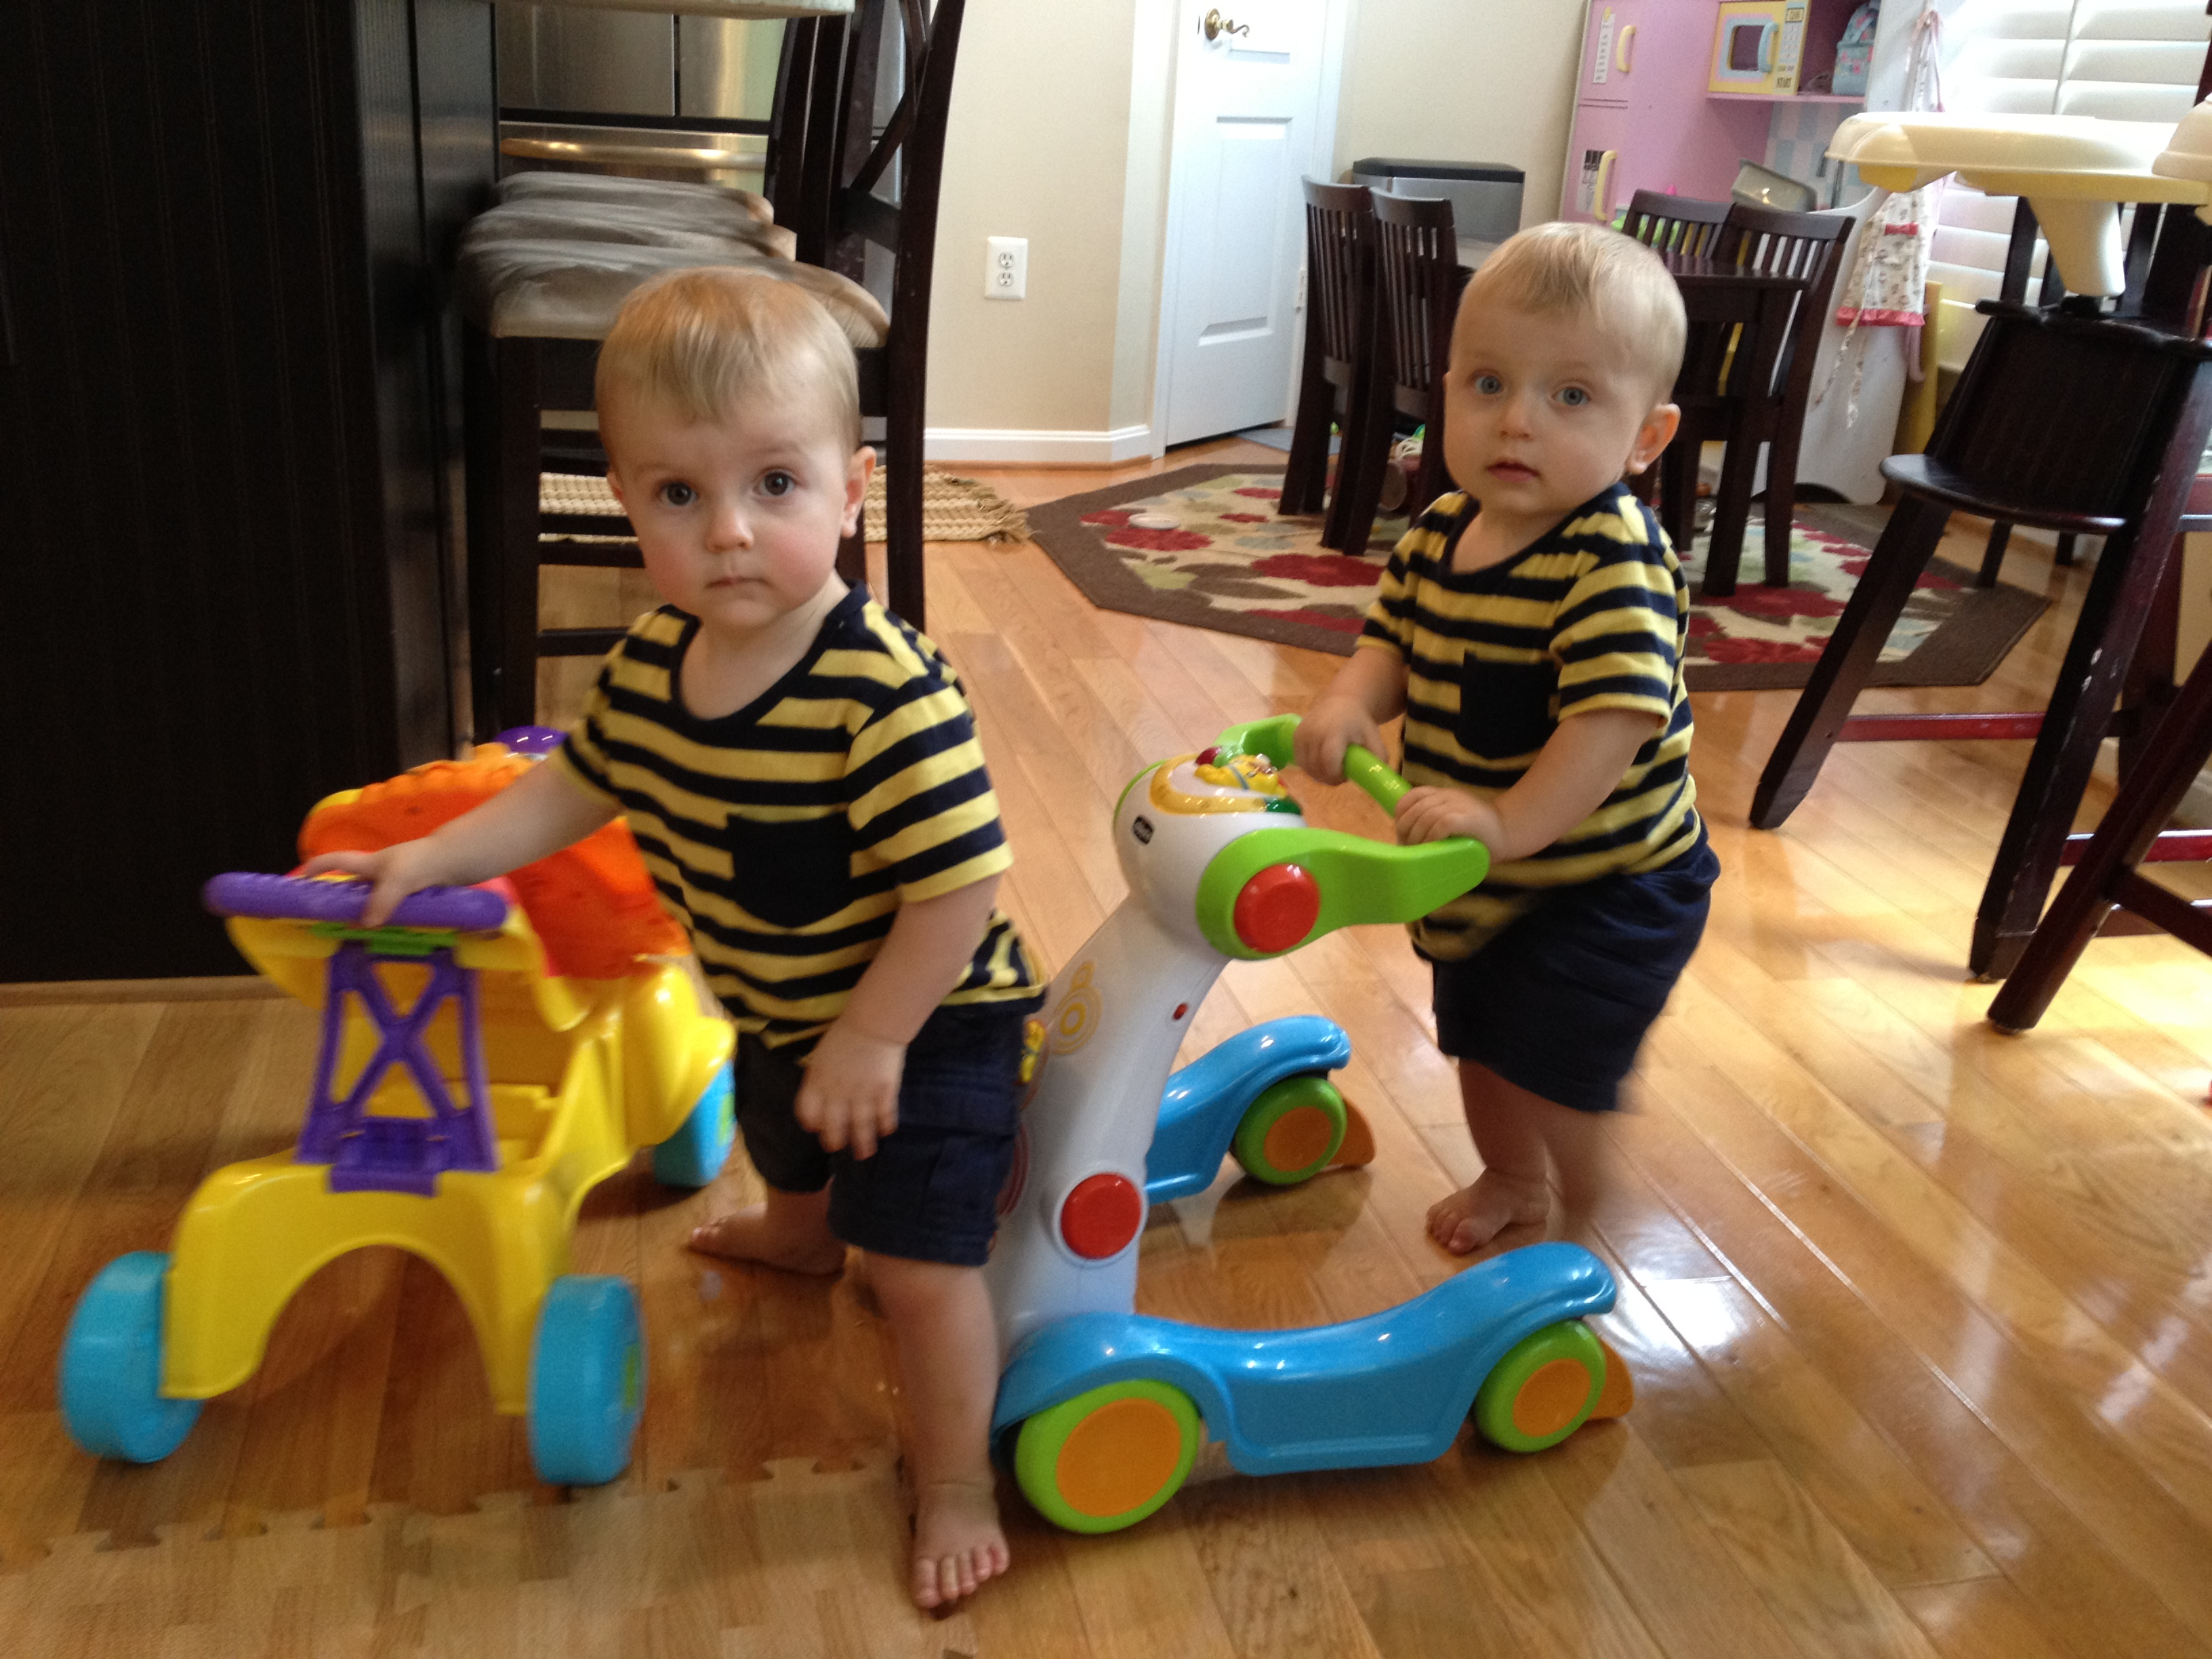 Twins walker toys learning to walk coping post partum screaming